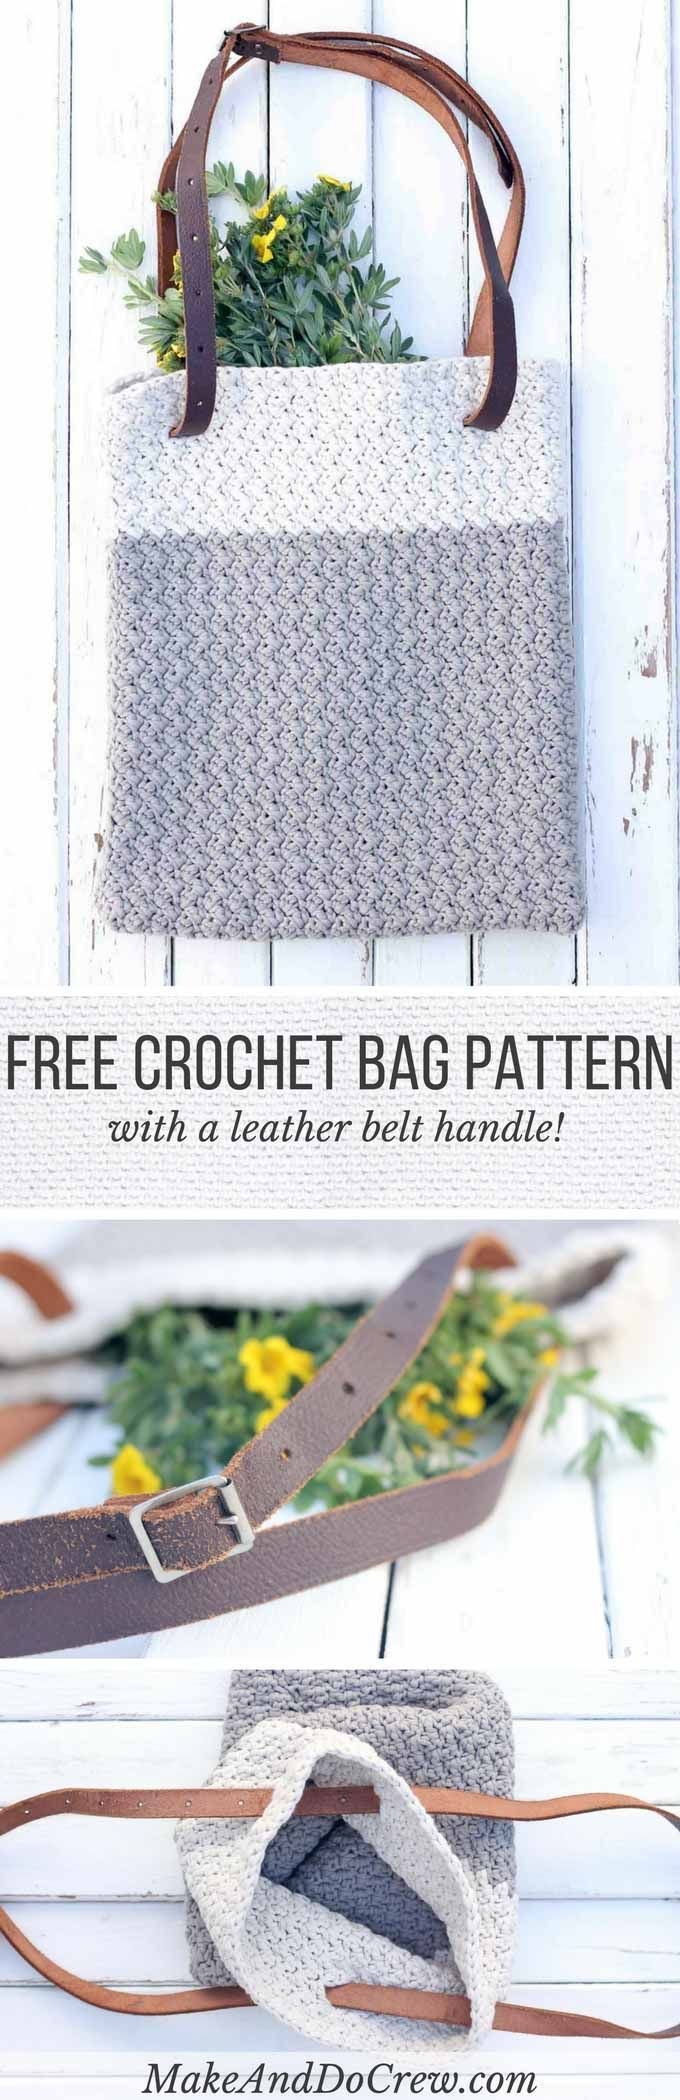 Use a simple leather belt to update this easy crochet bag pattern for fall. Pair it with a unique watch for the perfect minimalist fall statement pieces.